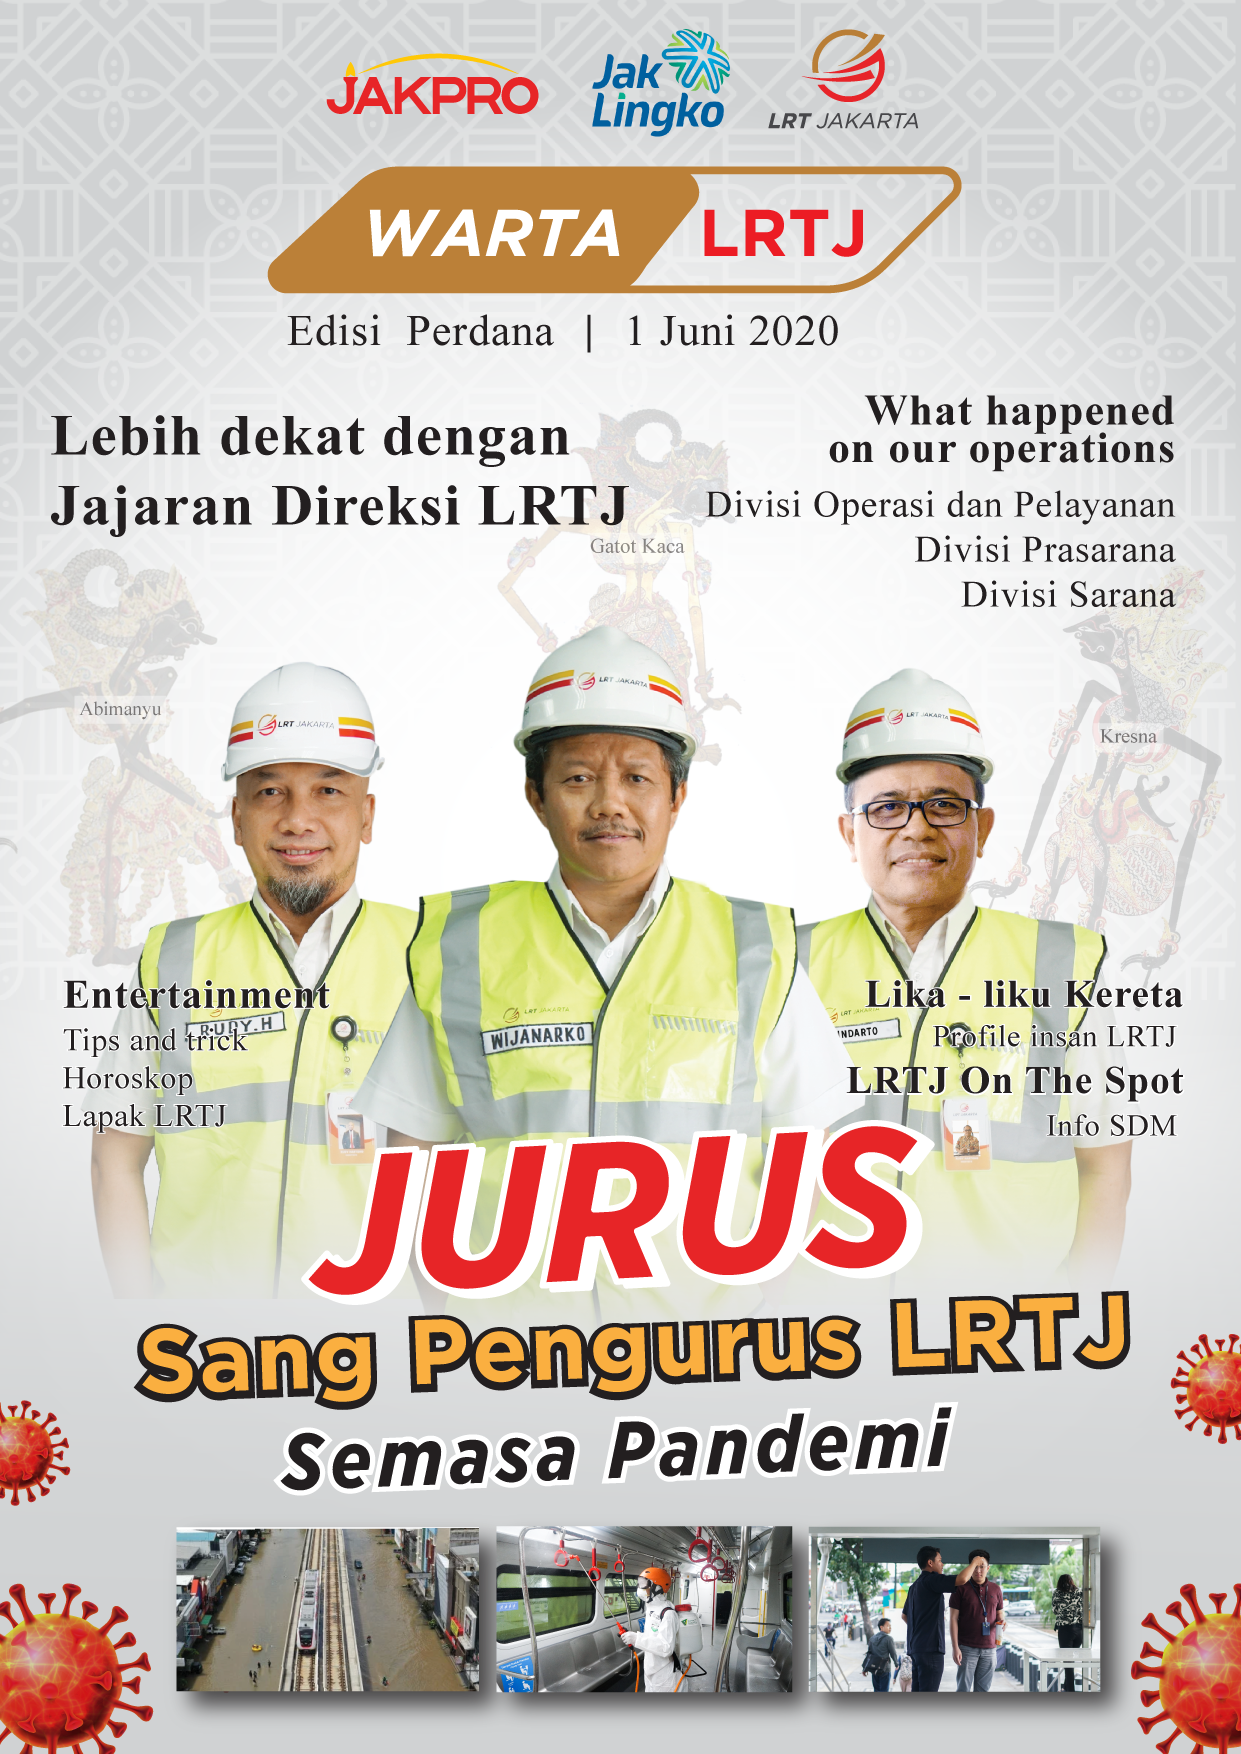 The New Online Media of LRT Jakarta, Warta LRTJ